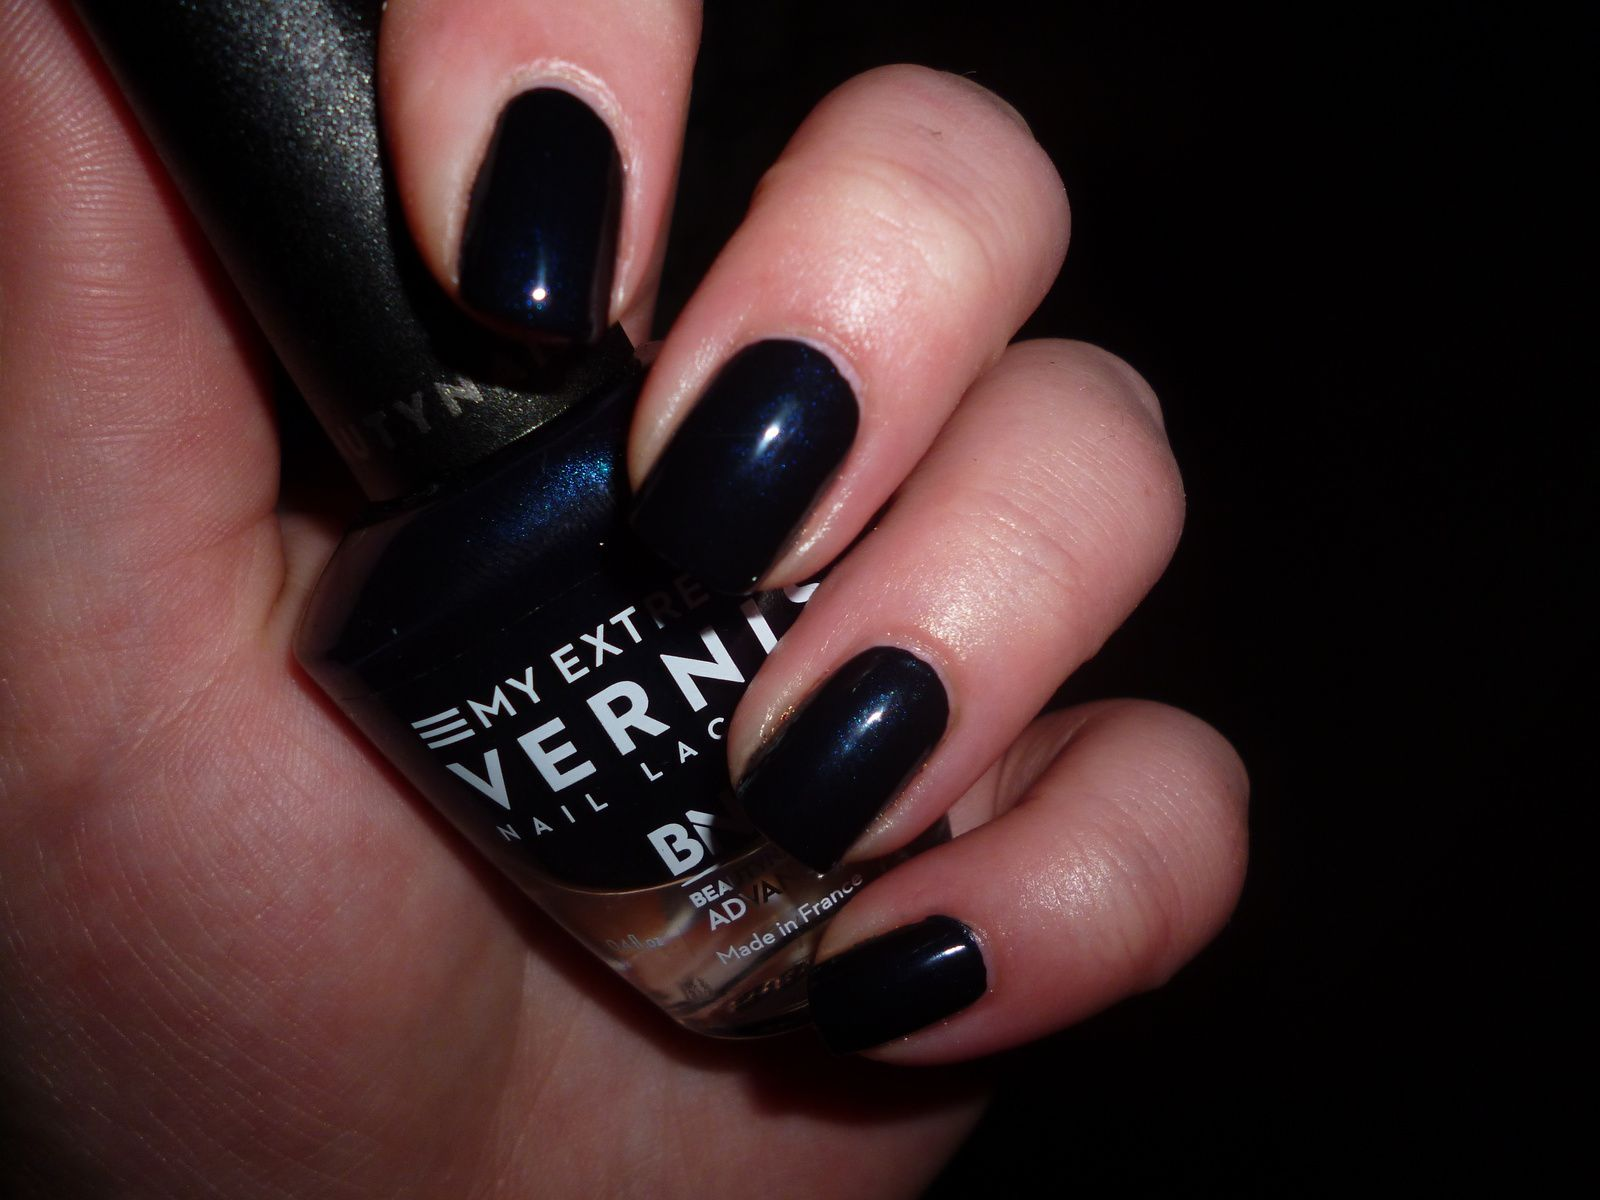 MY EXTREM VERNIS OPERA PUNK - Beautynails